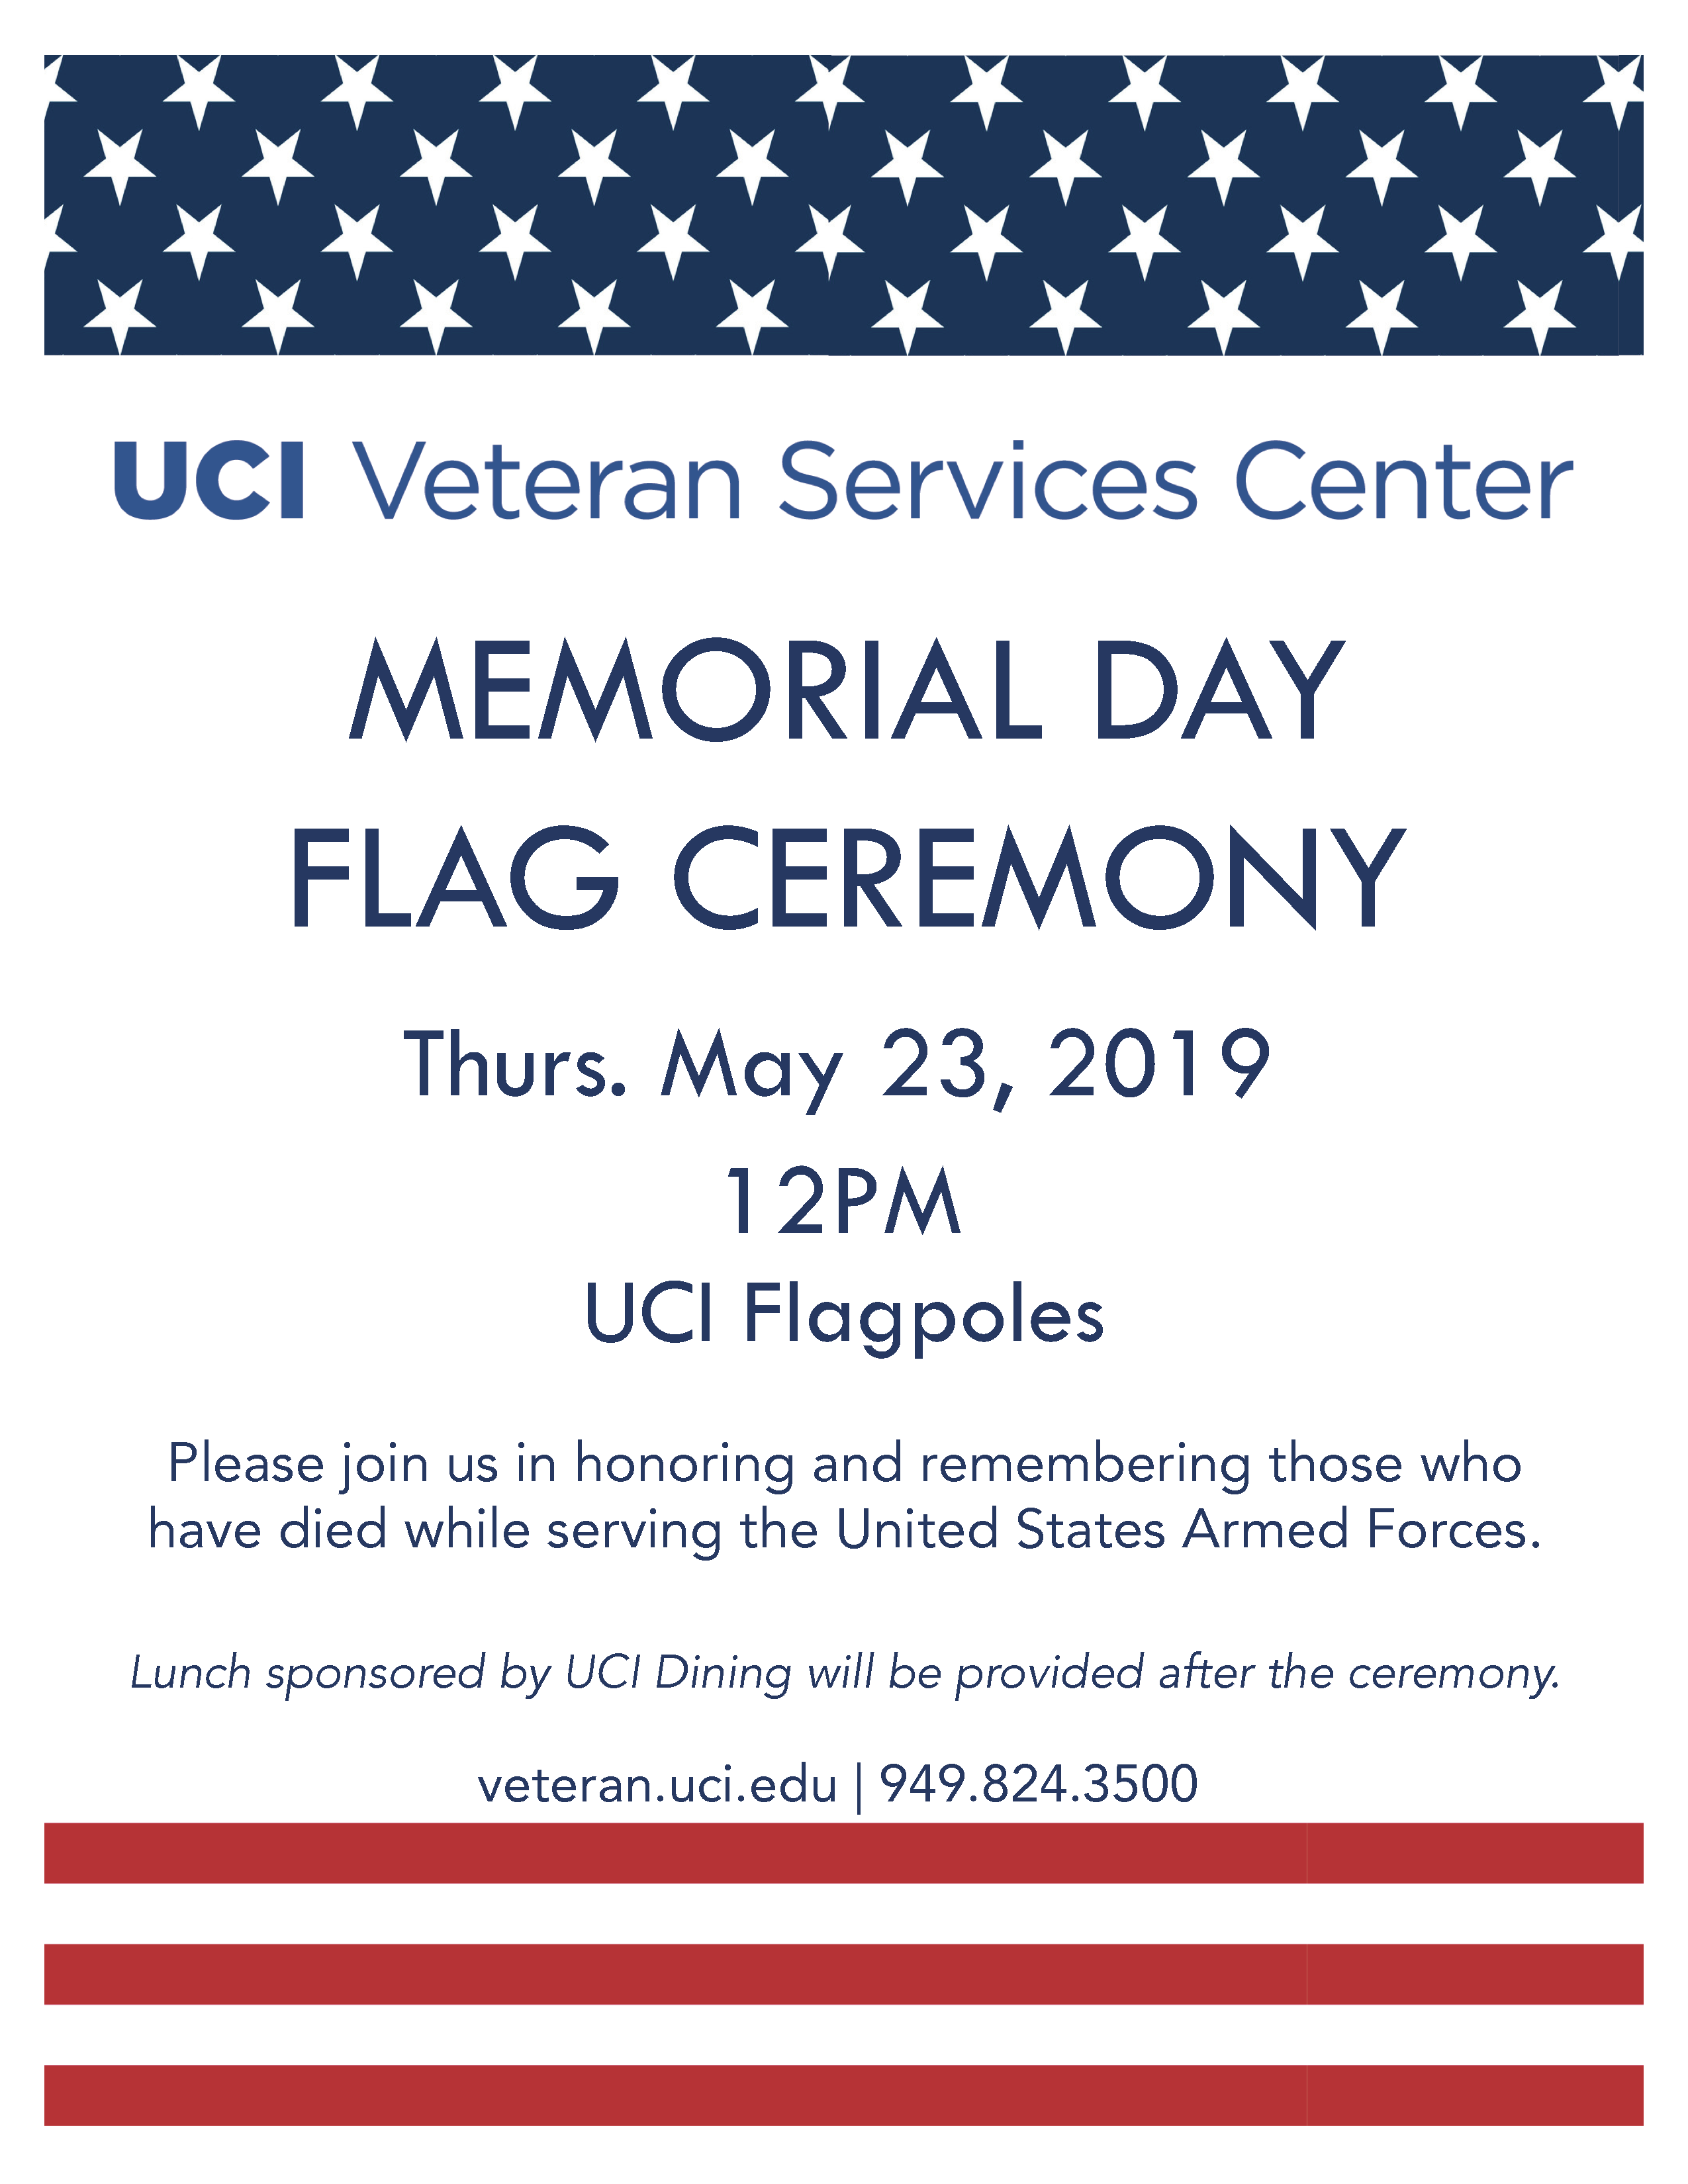 UCI Veteran Services Center Memorial Day Flag Ceremony Thurs. May 23, 2019 12PM UCI Flagpoles Please join us in honoring and remembering those who have died while serving the United State Armed Forces. Lunch sponsored by UCI Dining will be provided after the ceremony. veteran.uci.edu | 949.824.3500